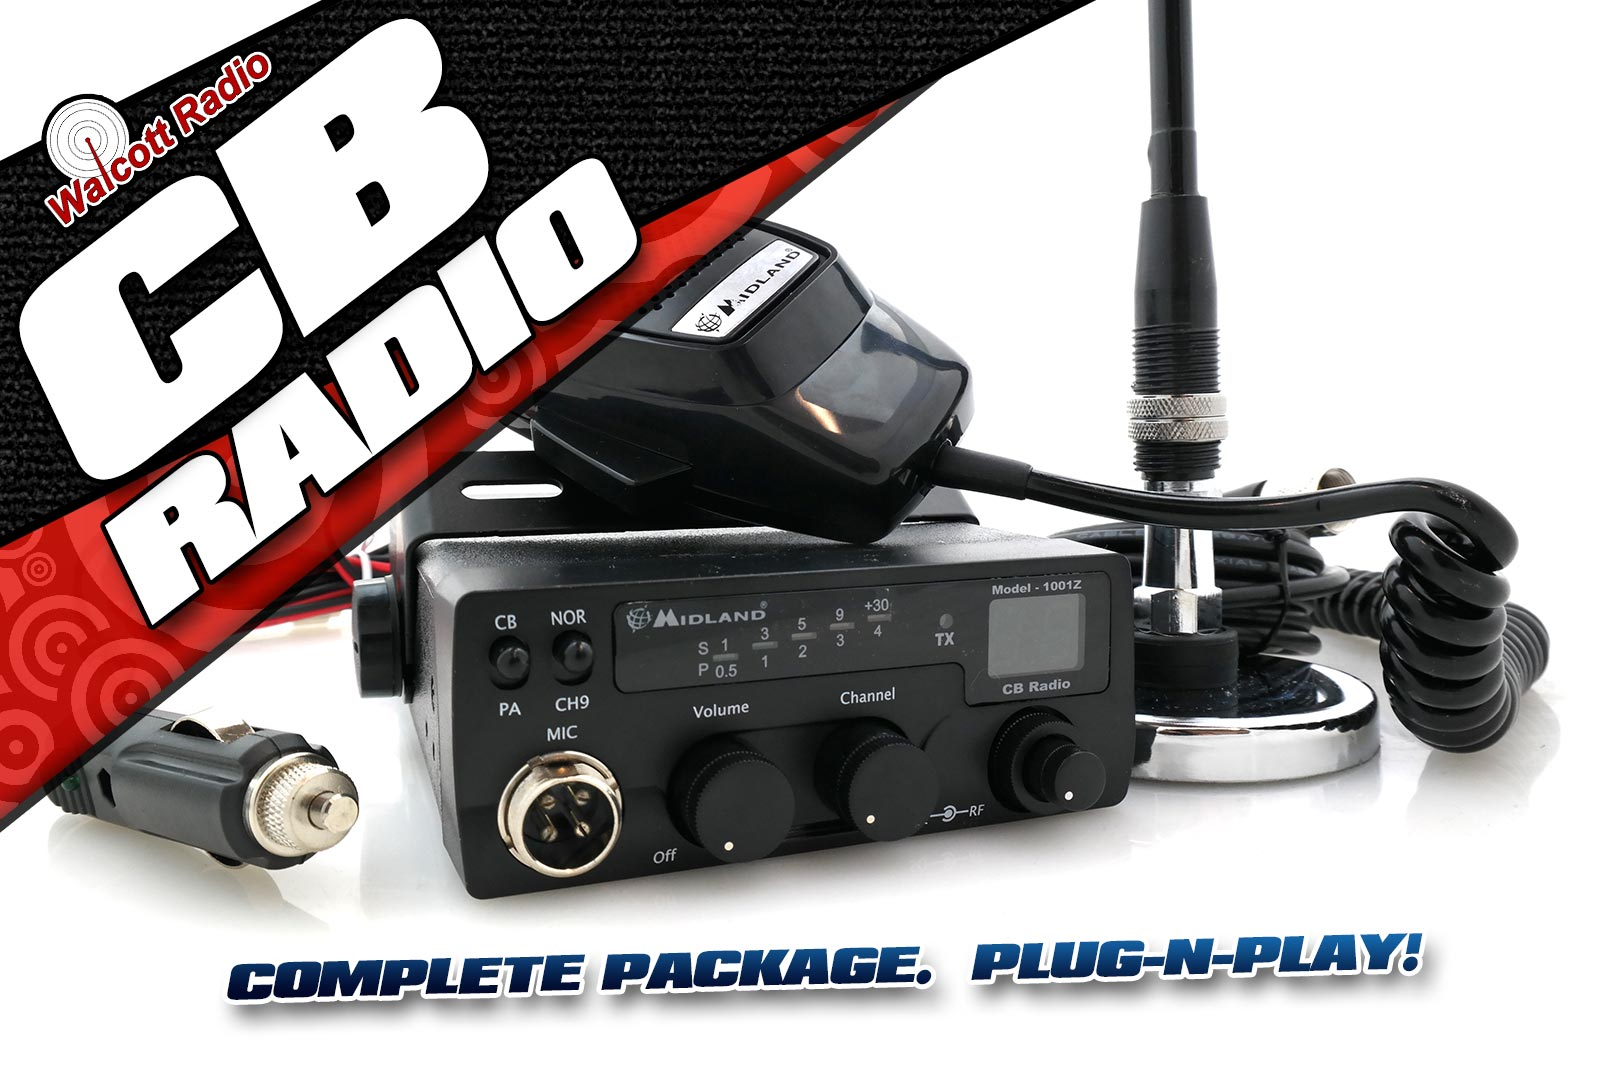 Complete CB Radio Bundled Package including Antenna